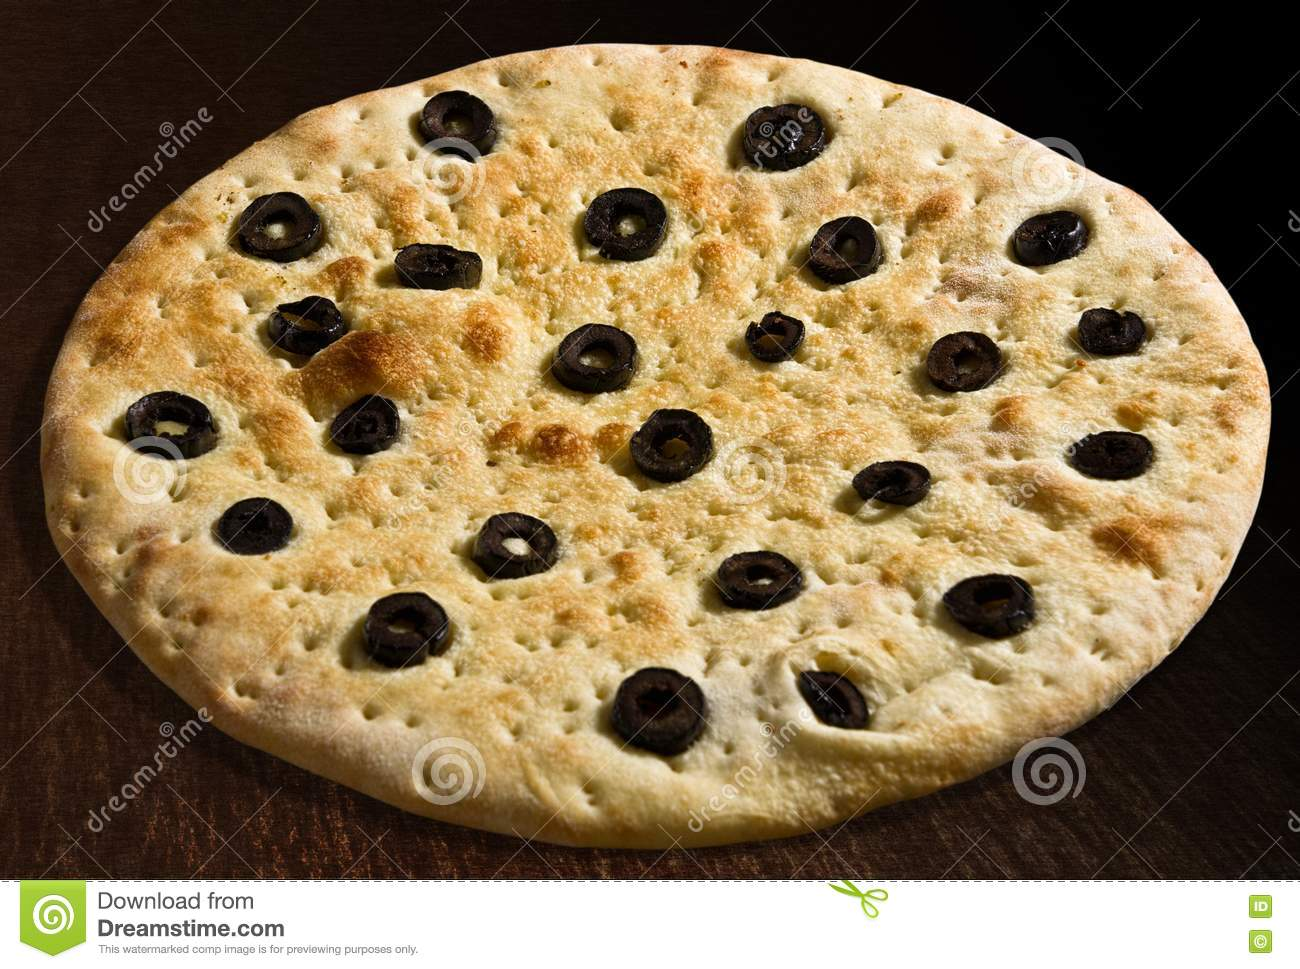 Focaccia With Olives Royalty Free Stock Image - Image: 24527096